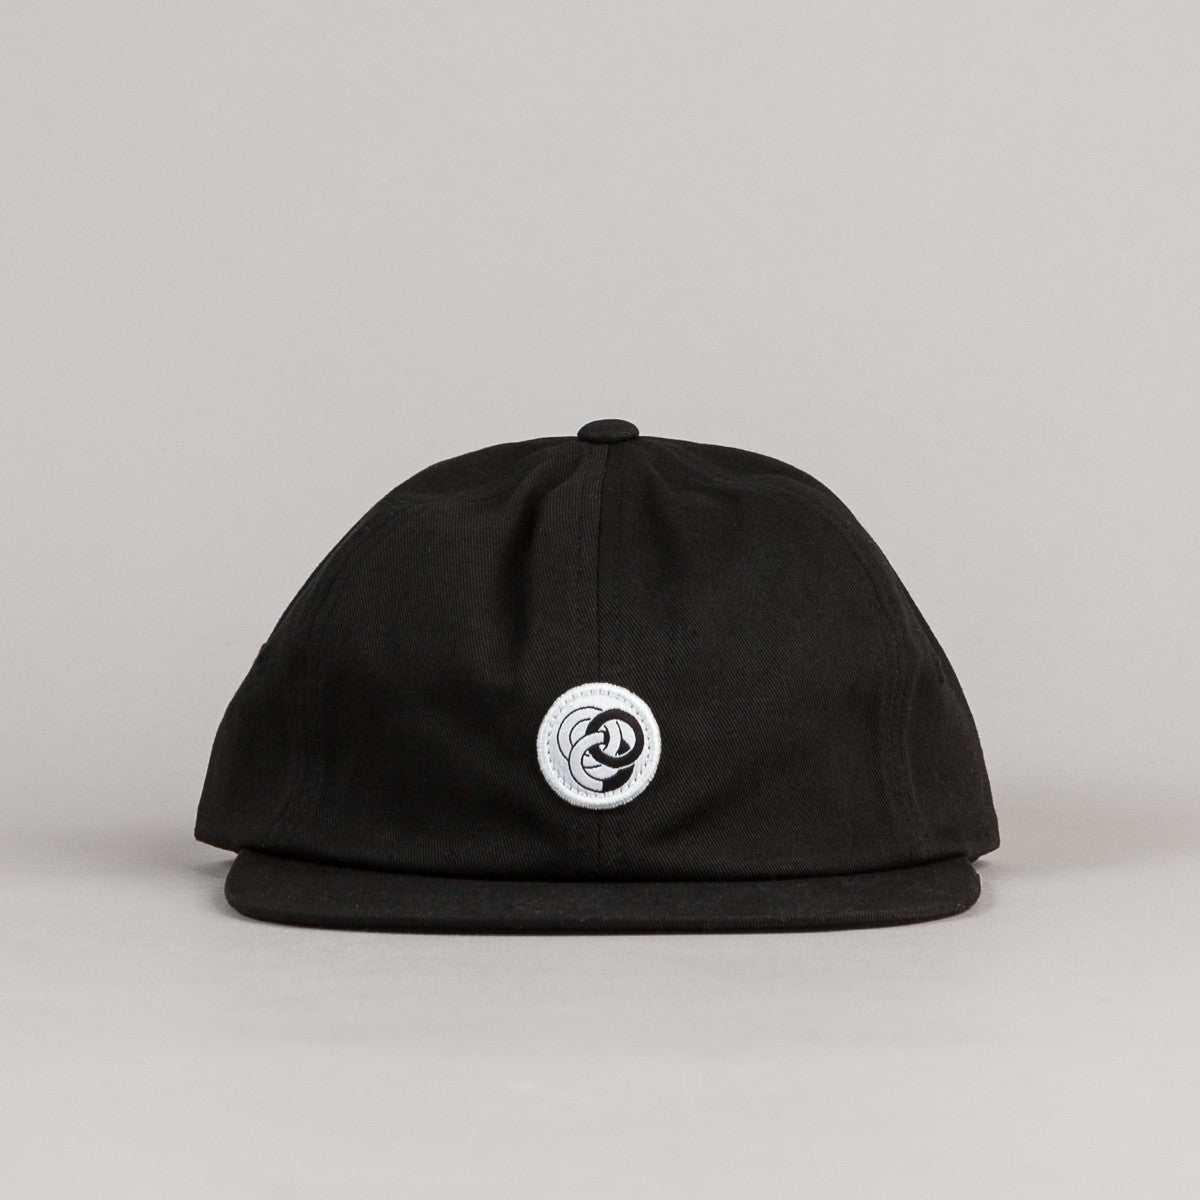 Vans x Pass Port Unstructured Cap - Black